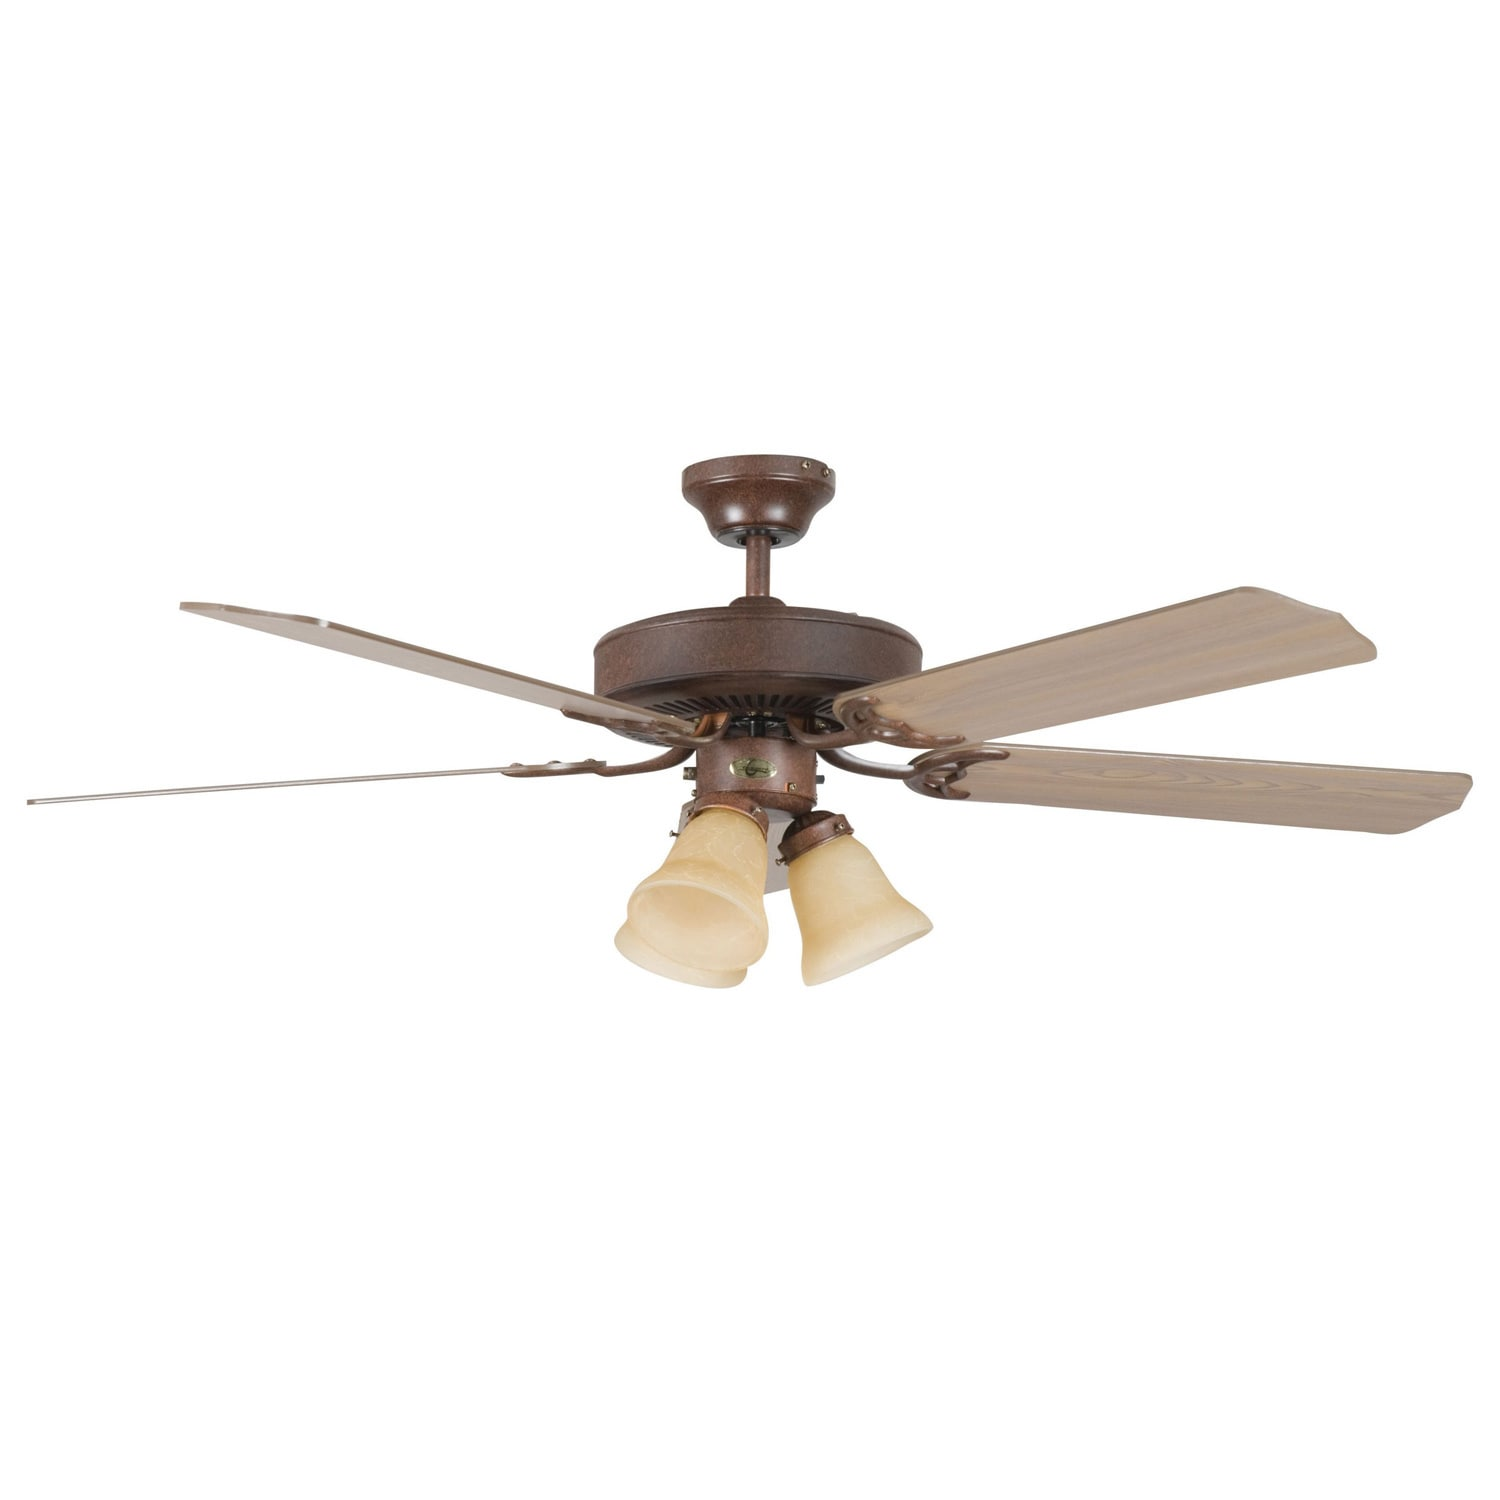 Overstock.com Heritage 52-inch in Rubbed Bronze Ceiling Fan at Sears.com